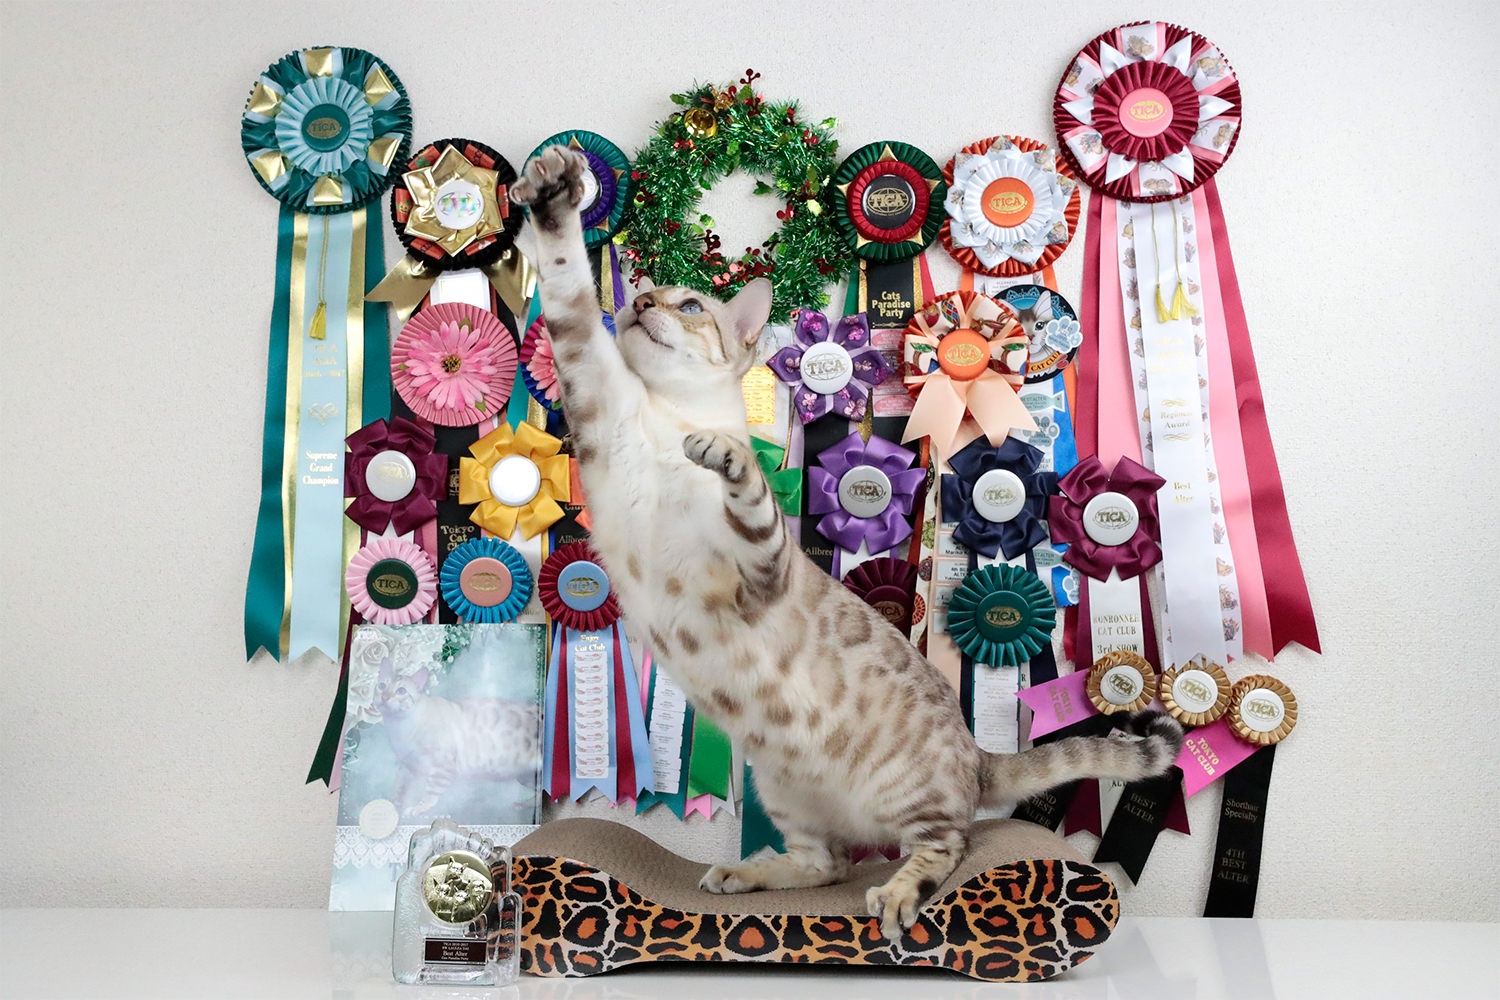 【2016-2017 BEST BENGAL ALTER OF THE YEAR】Snowbengal